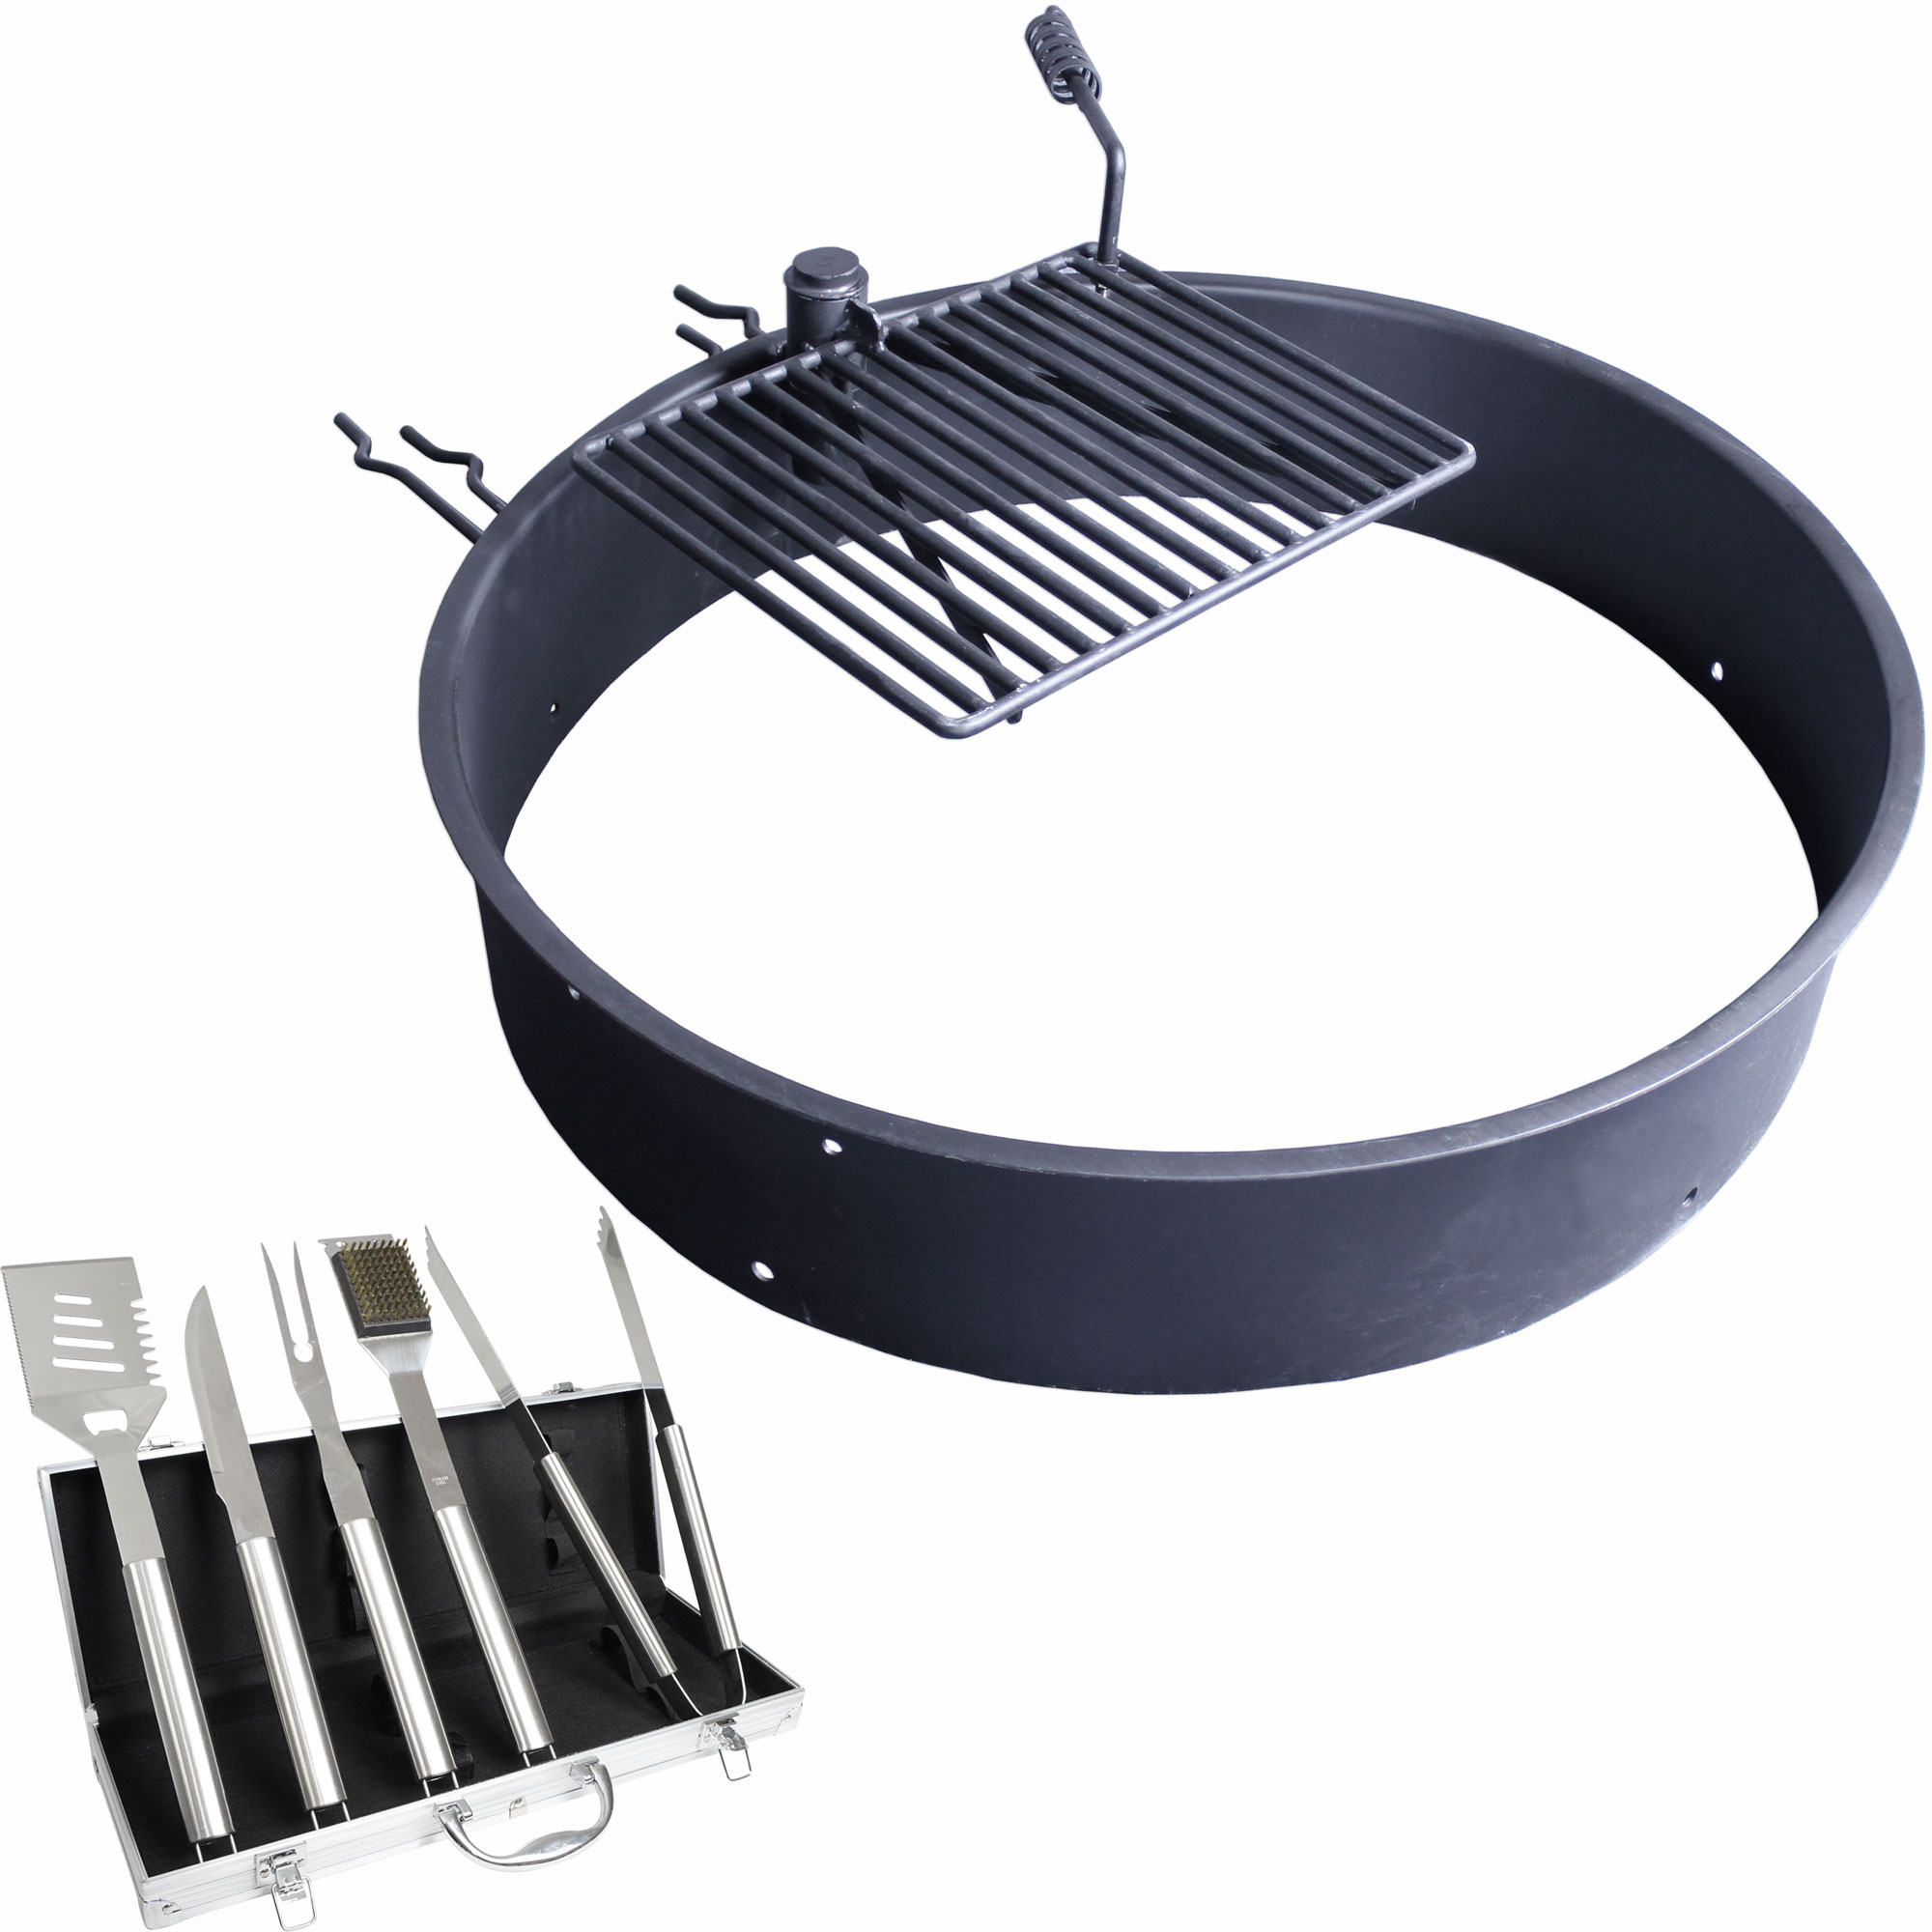 Fire ring with cooking grate campfire pit park grill bbq camping trail